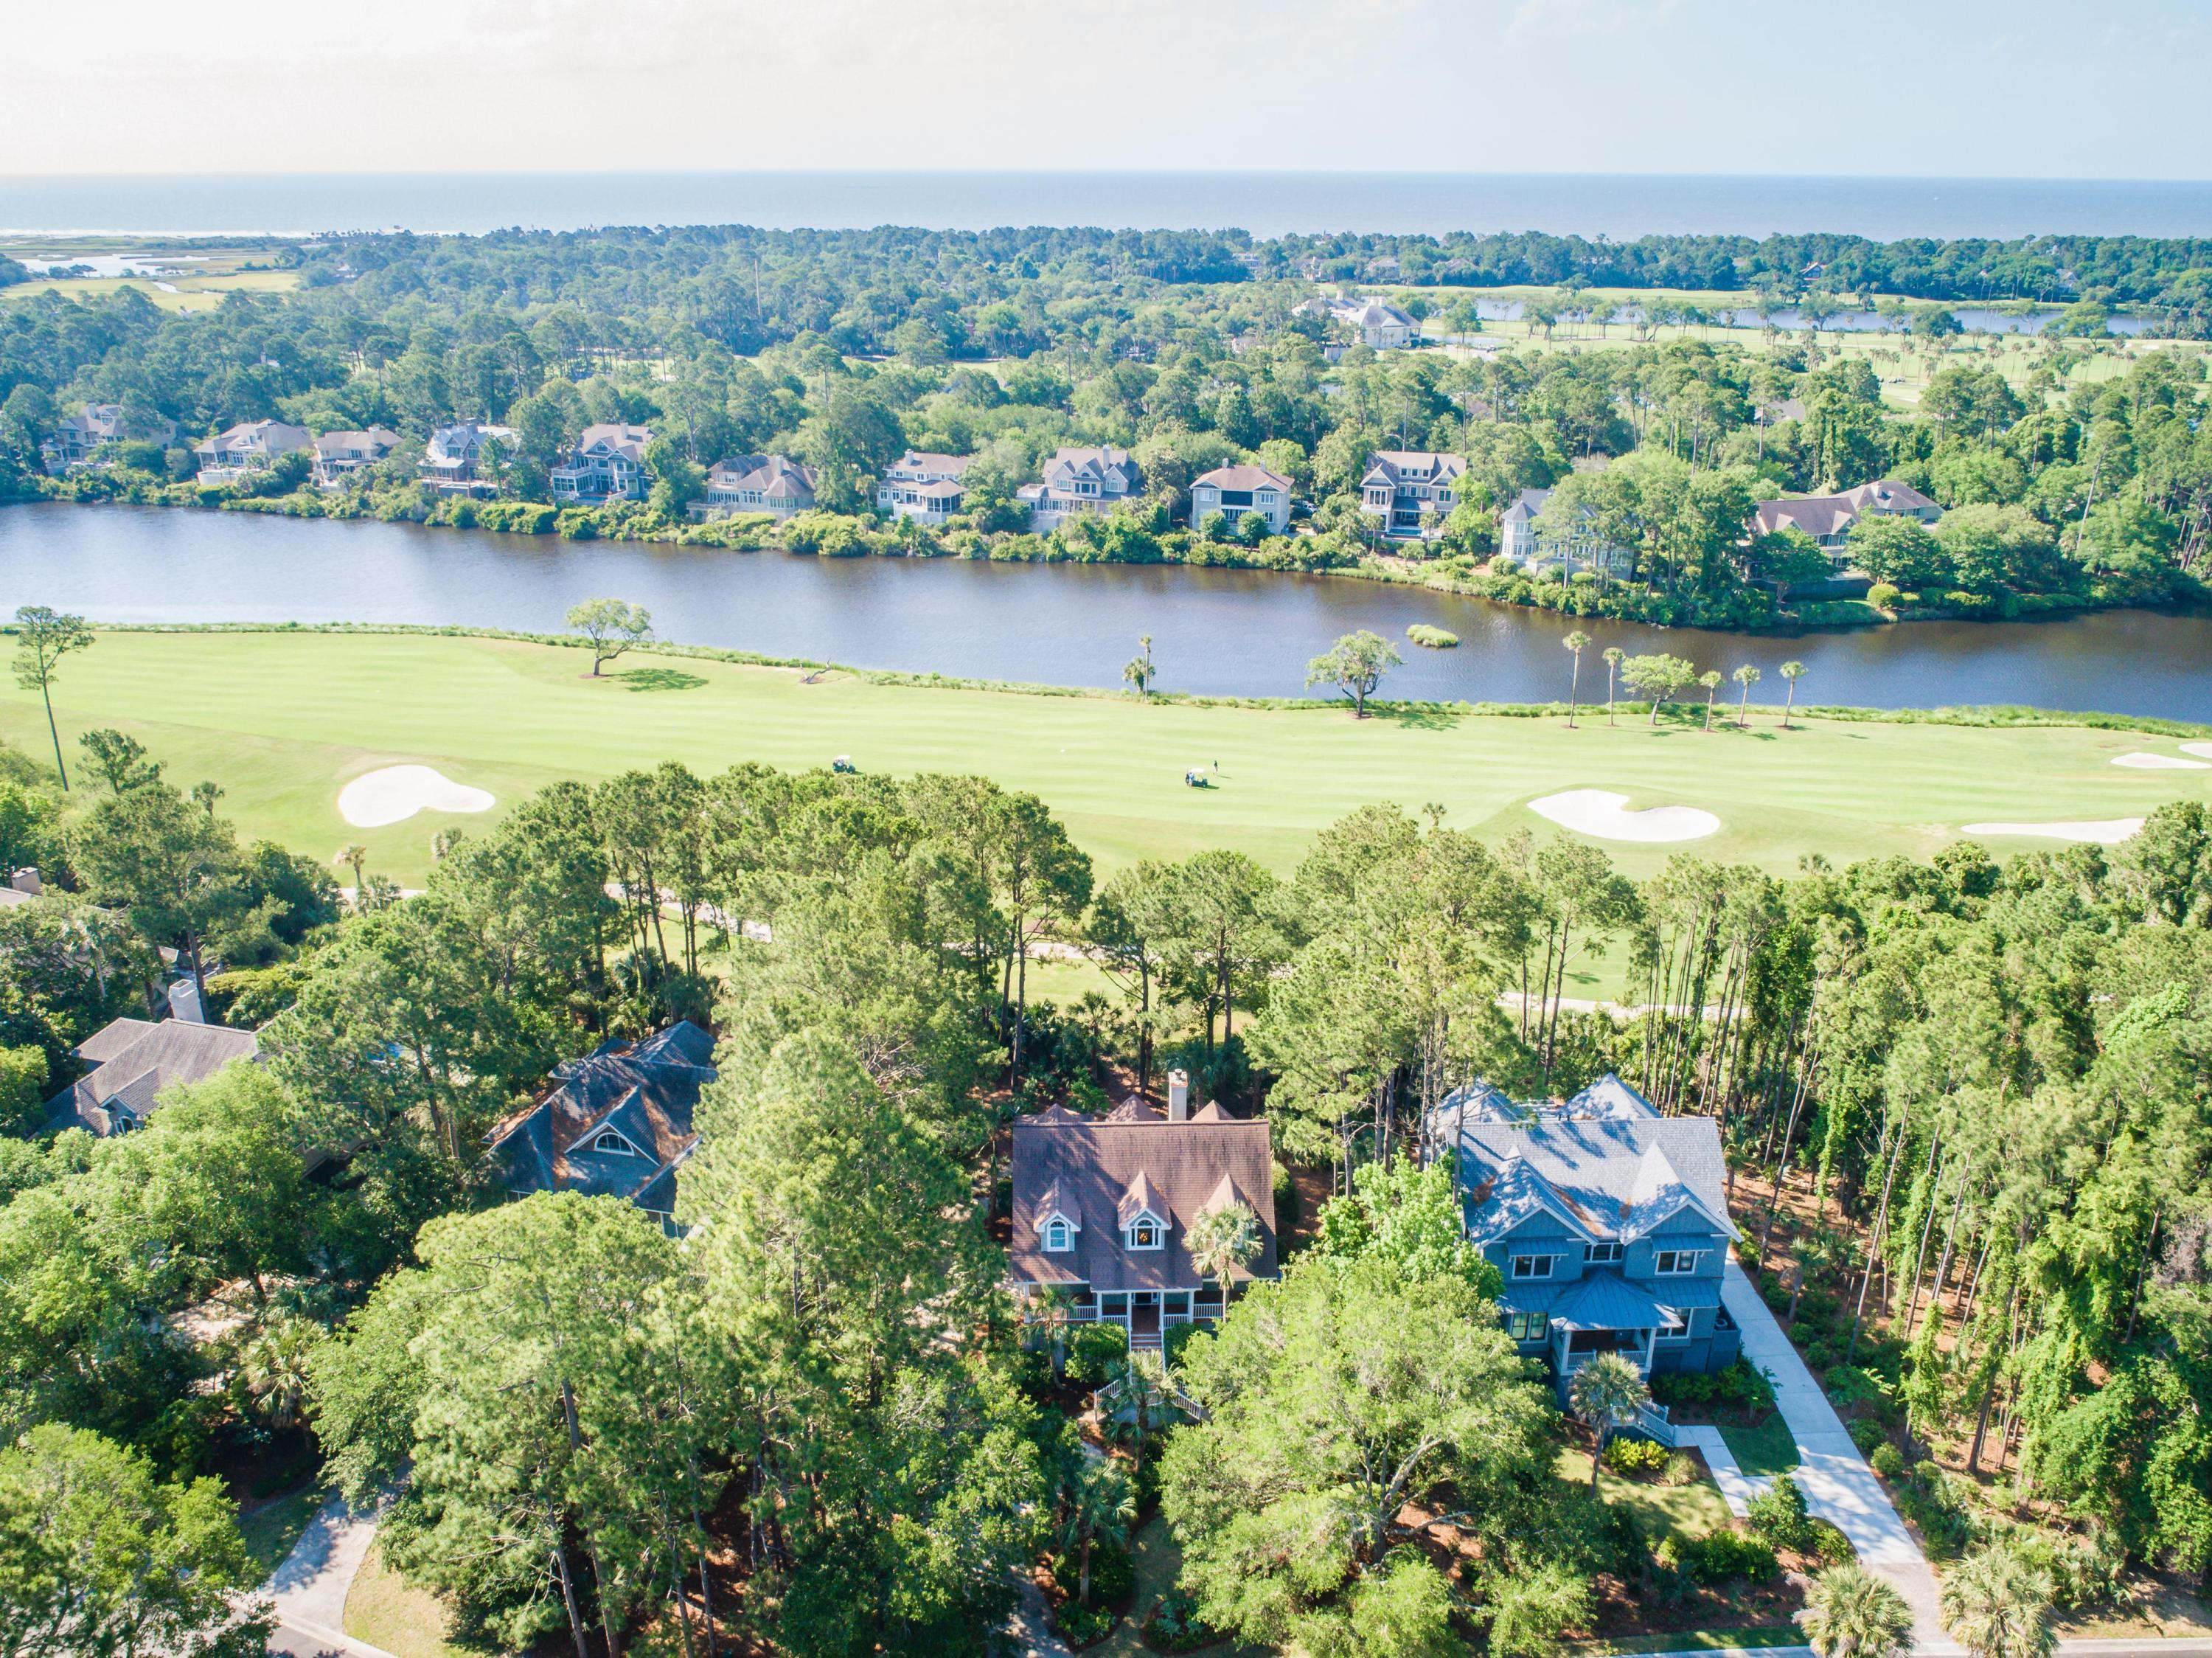 Kiawah Island Homes For Sale - 746 Glossy Ibis, Kiawah Island, SC - 10